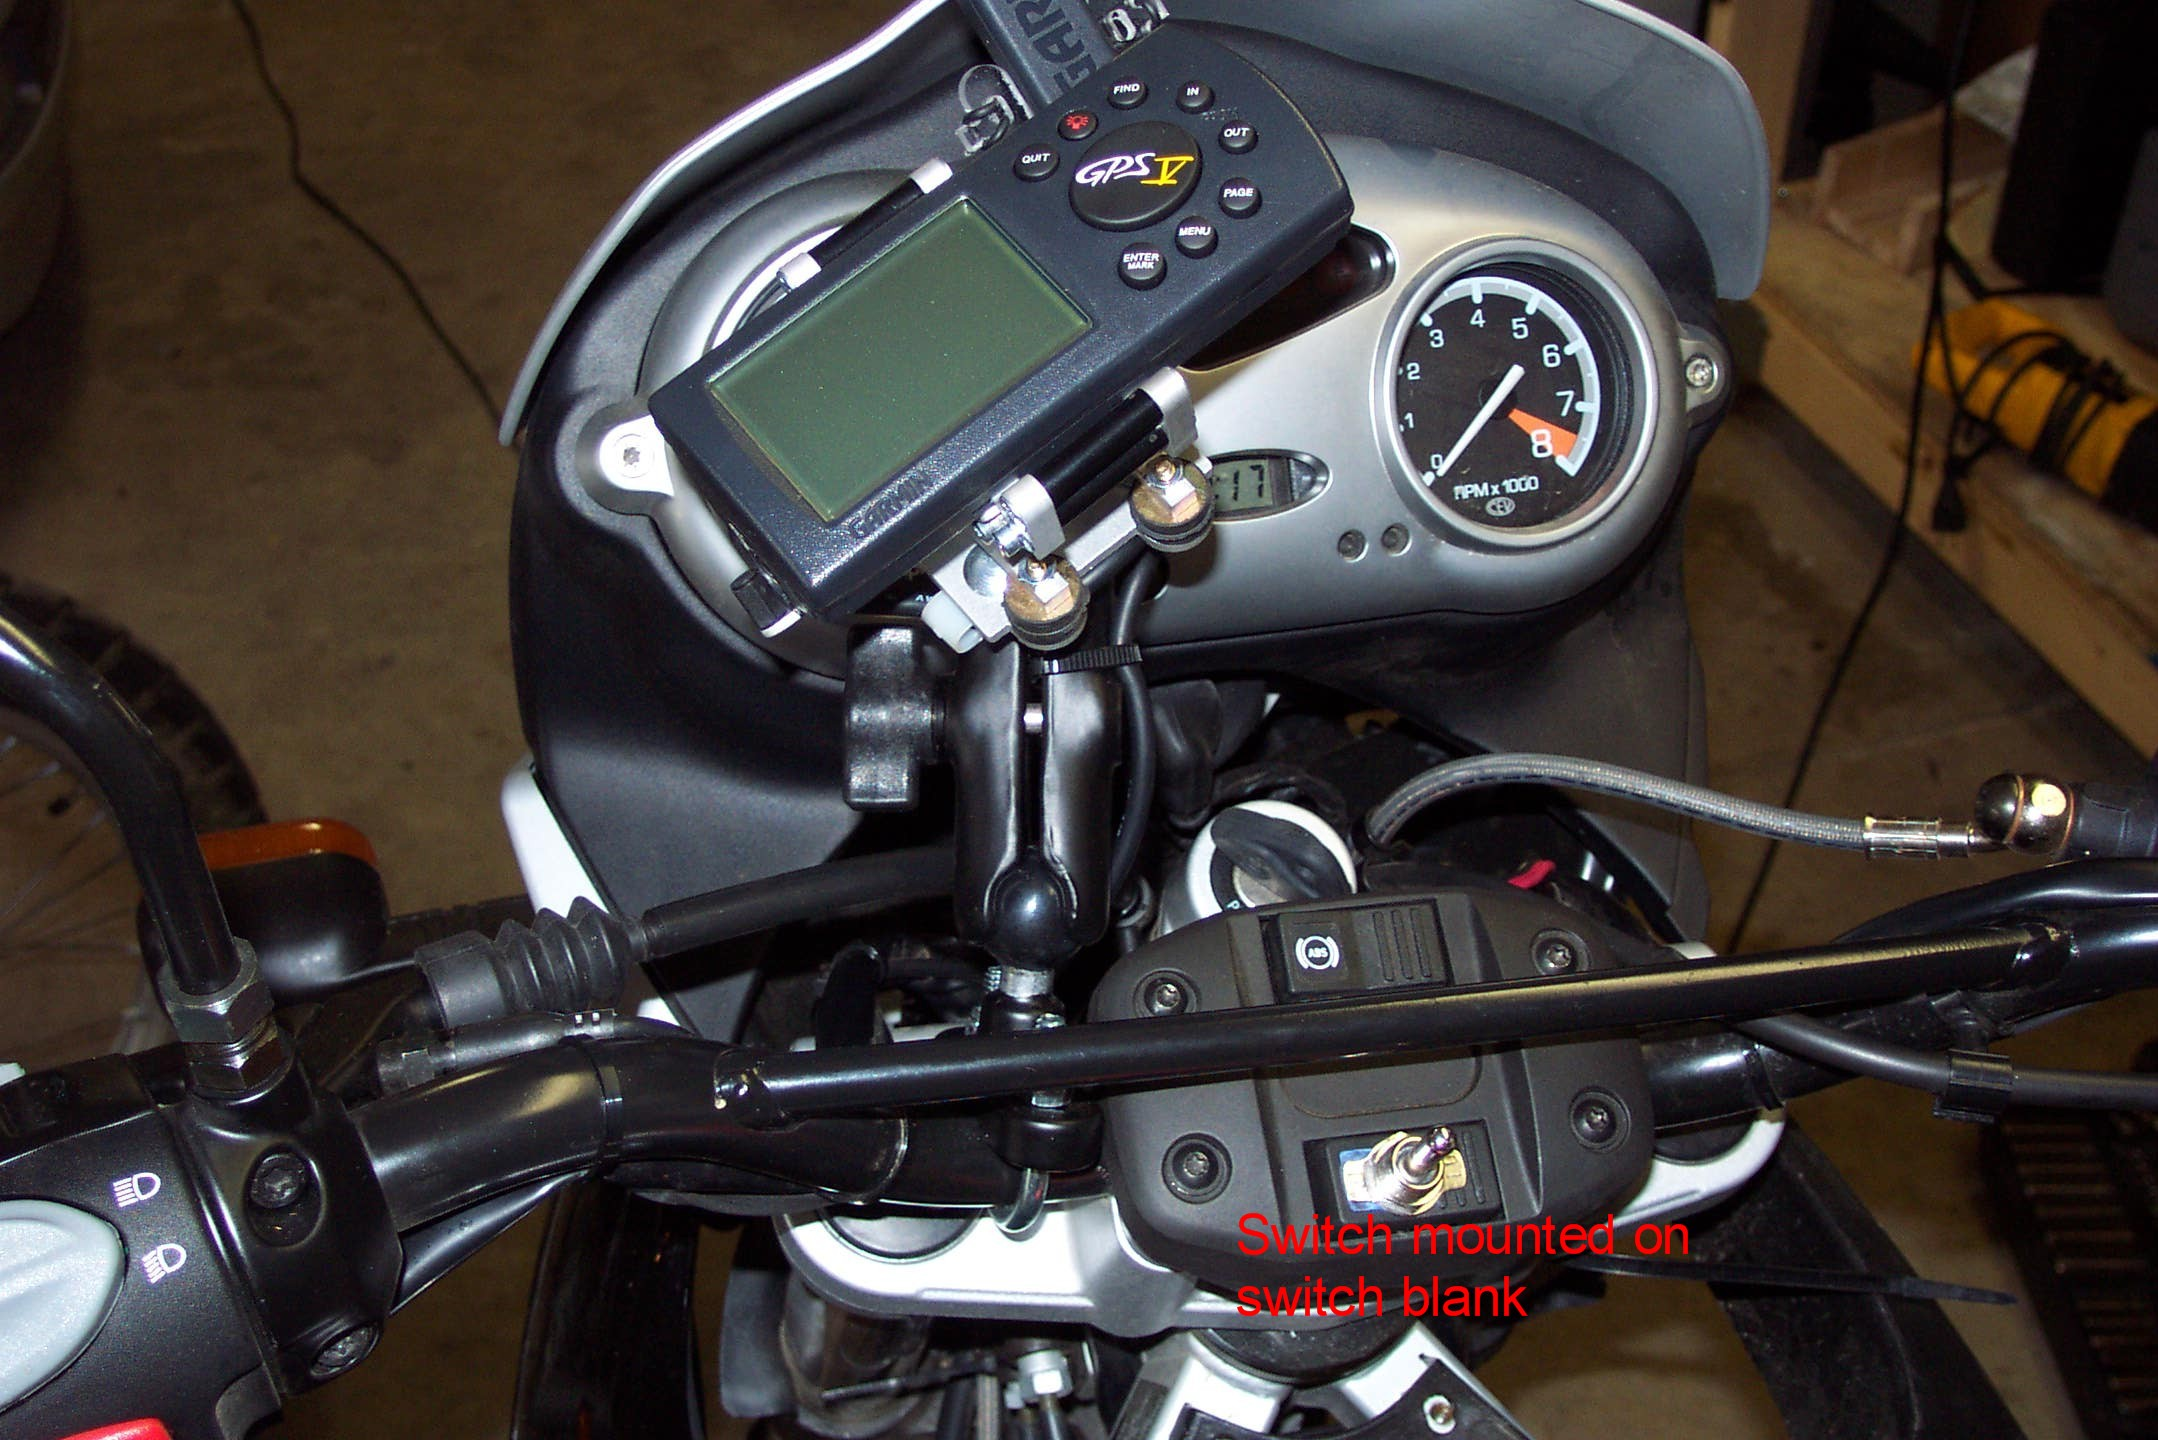 2001 bmw f650gs wiring diagram 2001 image wiring hot grips installation faq on 2001 bmw f650gs wiring diagram